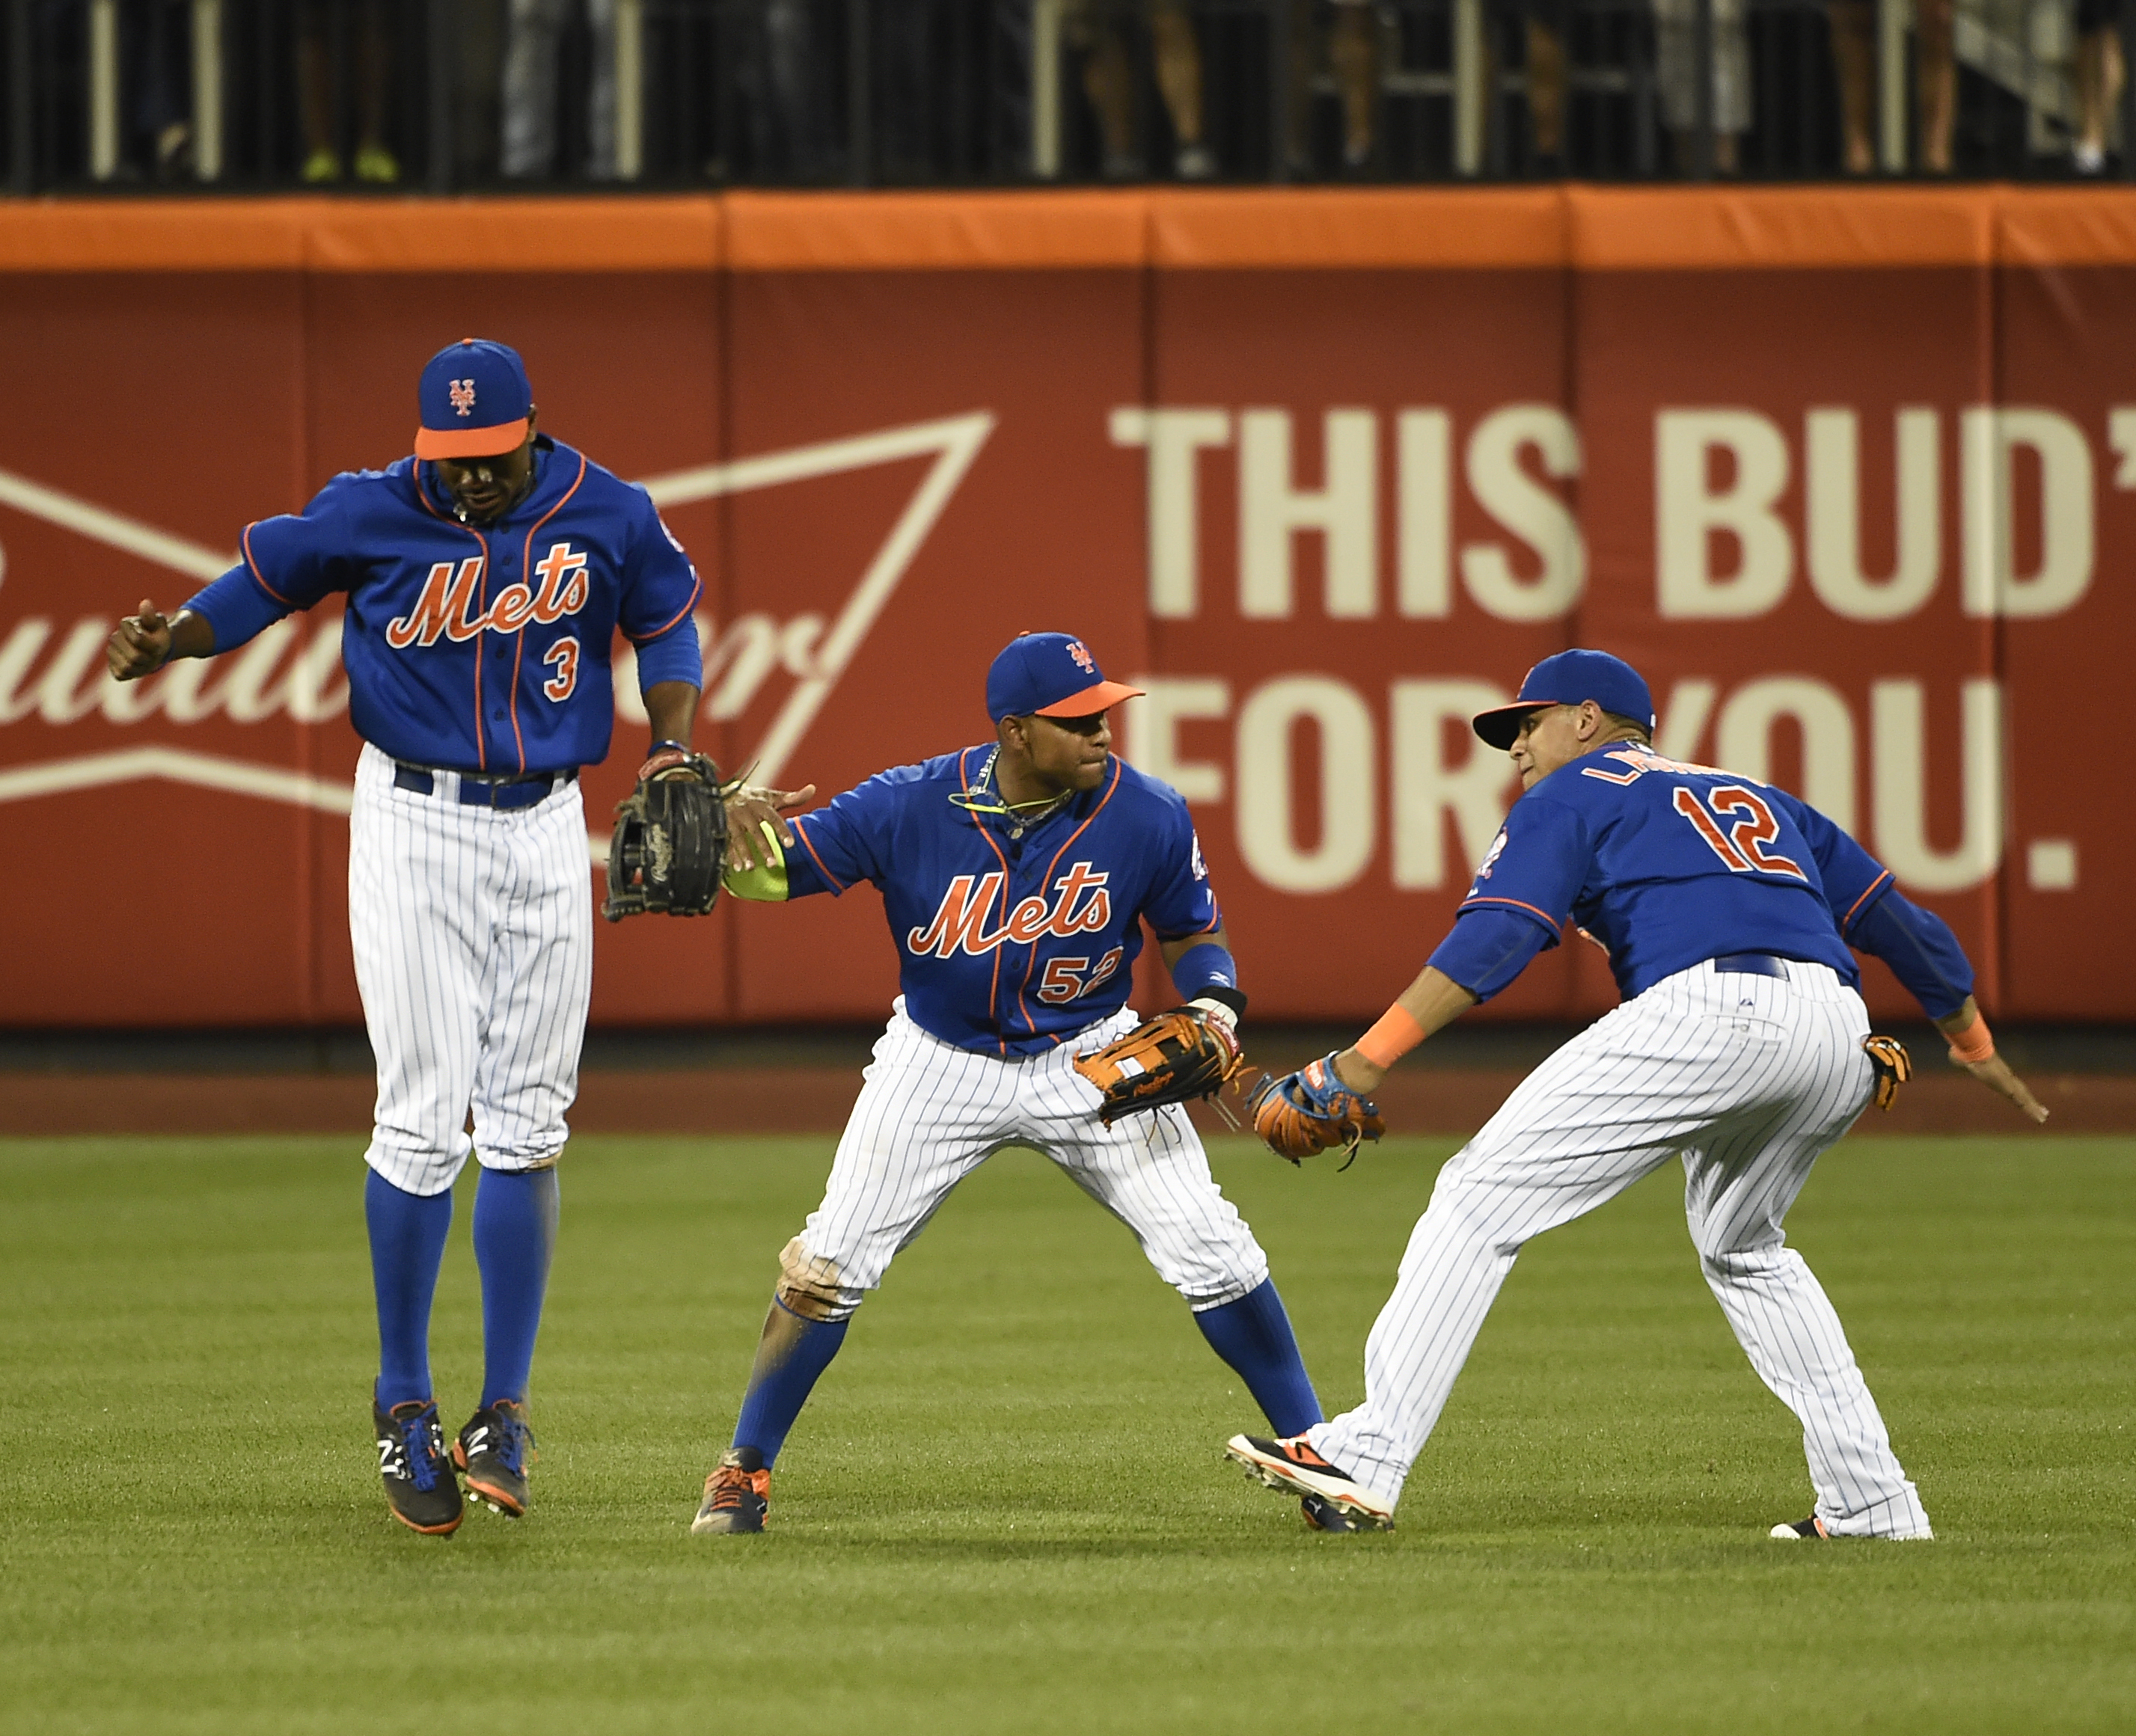 New York Mets' Curtis Granderson (3),  Yoenis Cespedes (52) and Juan Lagares celebrate the Mets' 9-4 win over the Philadelphia Phillies in a baseball game Wednesday, Sept. 2, 2015, in New York. (AP Photo/Kathy Kmonicek)